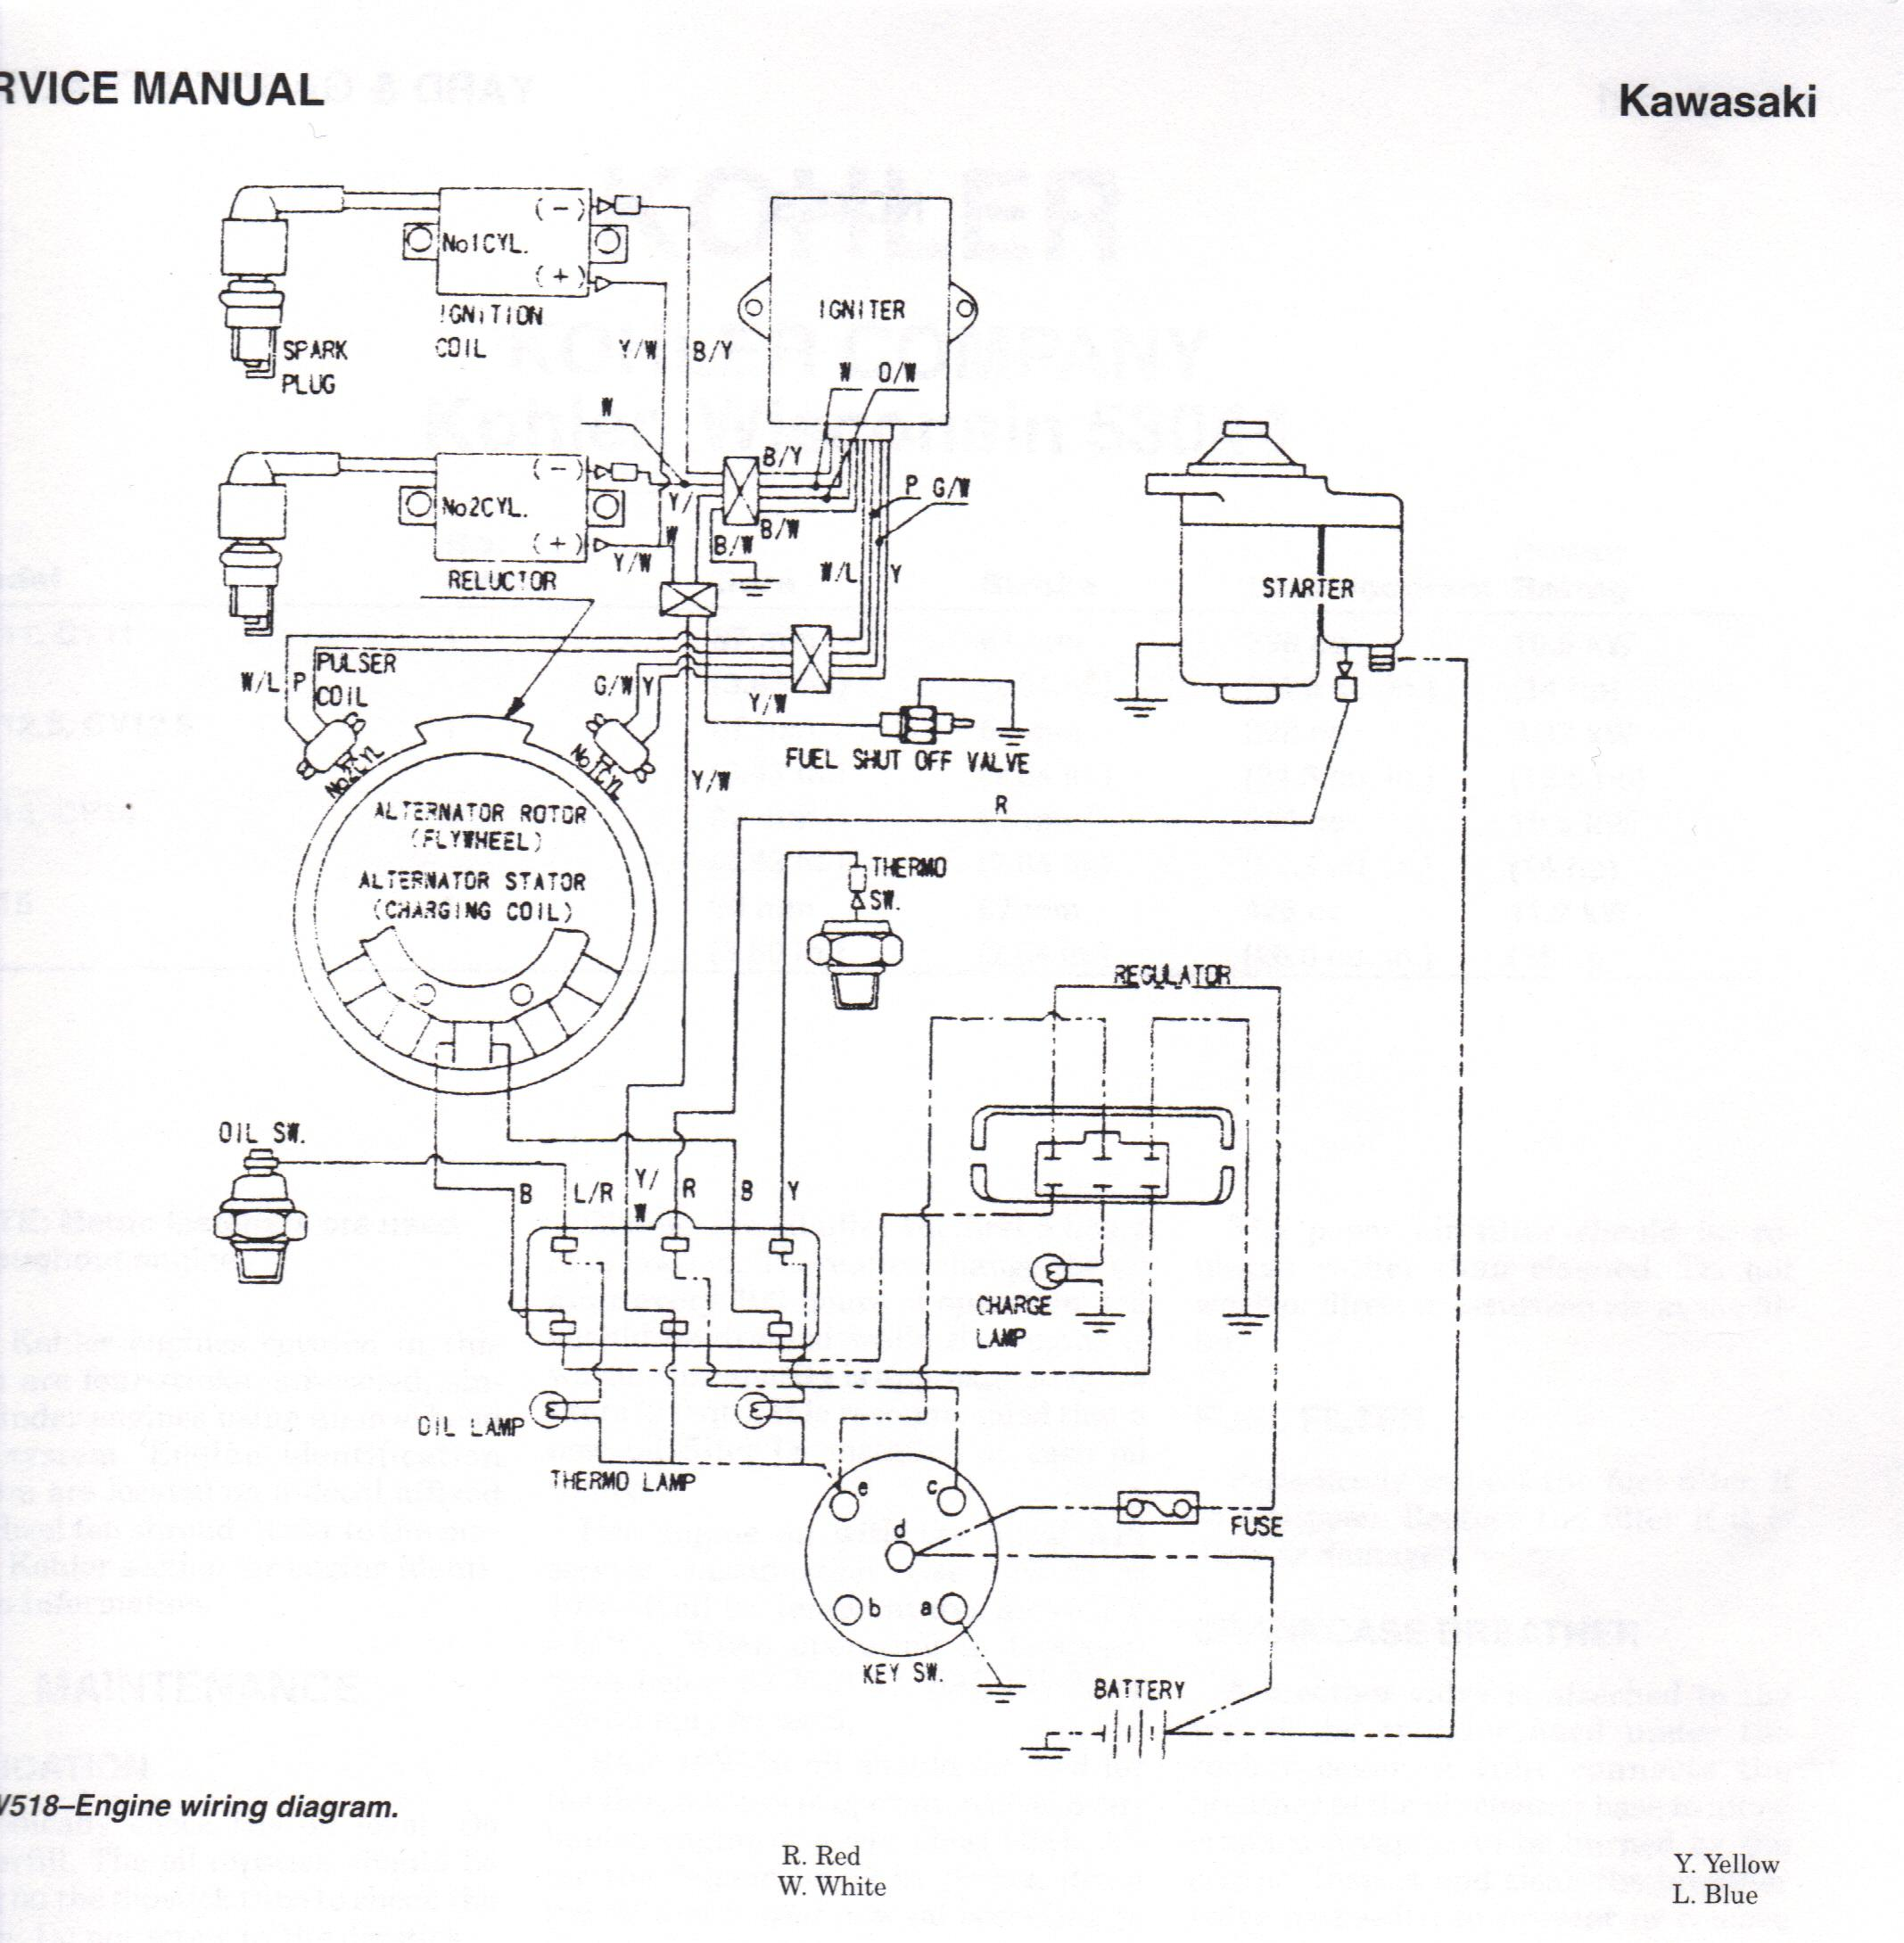 John Deere L100 Parts Diagram in addition John Deere L110 Wiring Harness Diagram Wiring Diagrams likewise 488429522059877739 besides 7lyge Starting Issue John Deere Gator Help together with Single Phase Marathon Motor Wiring Diagram. on diagram of john deere 345 motor